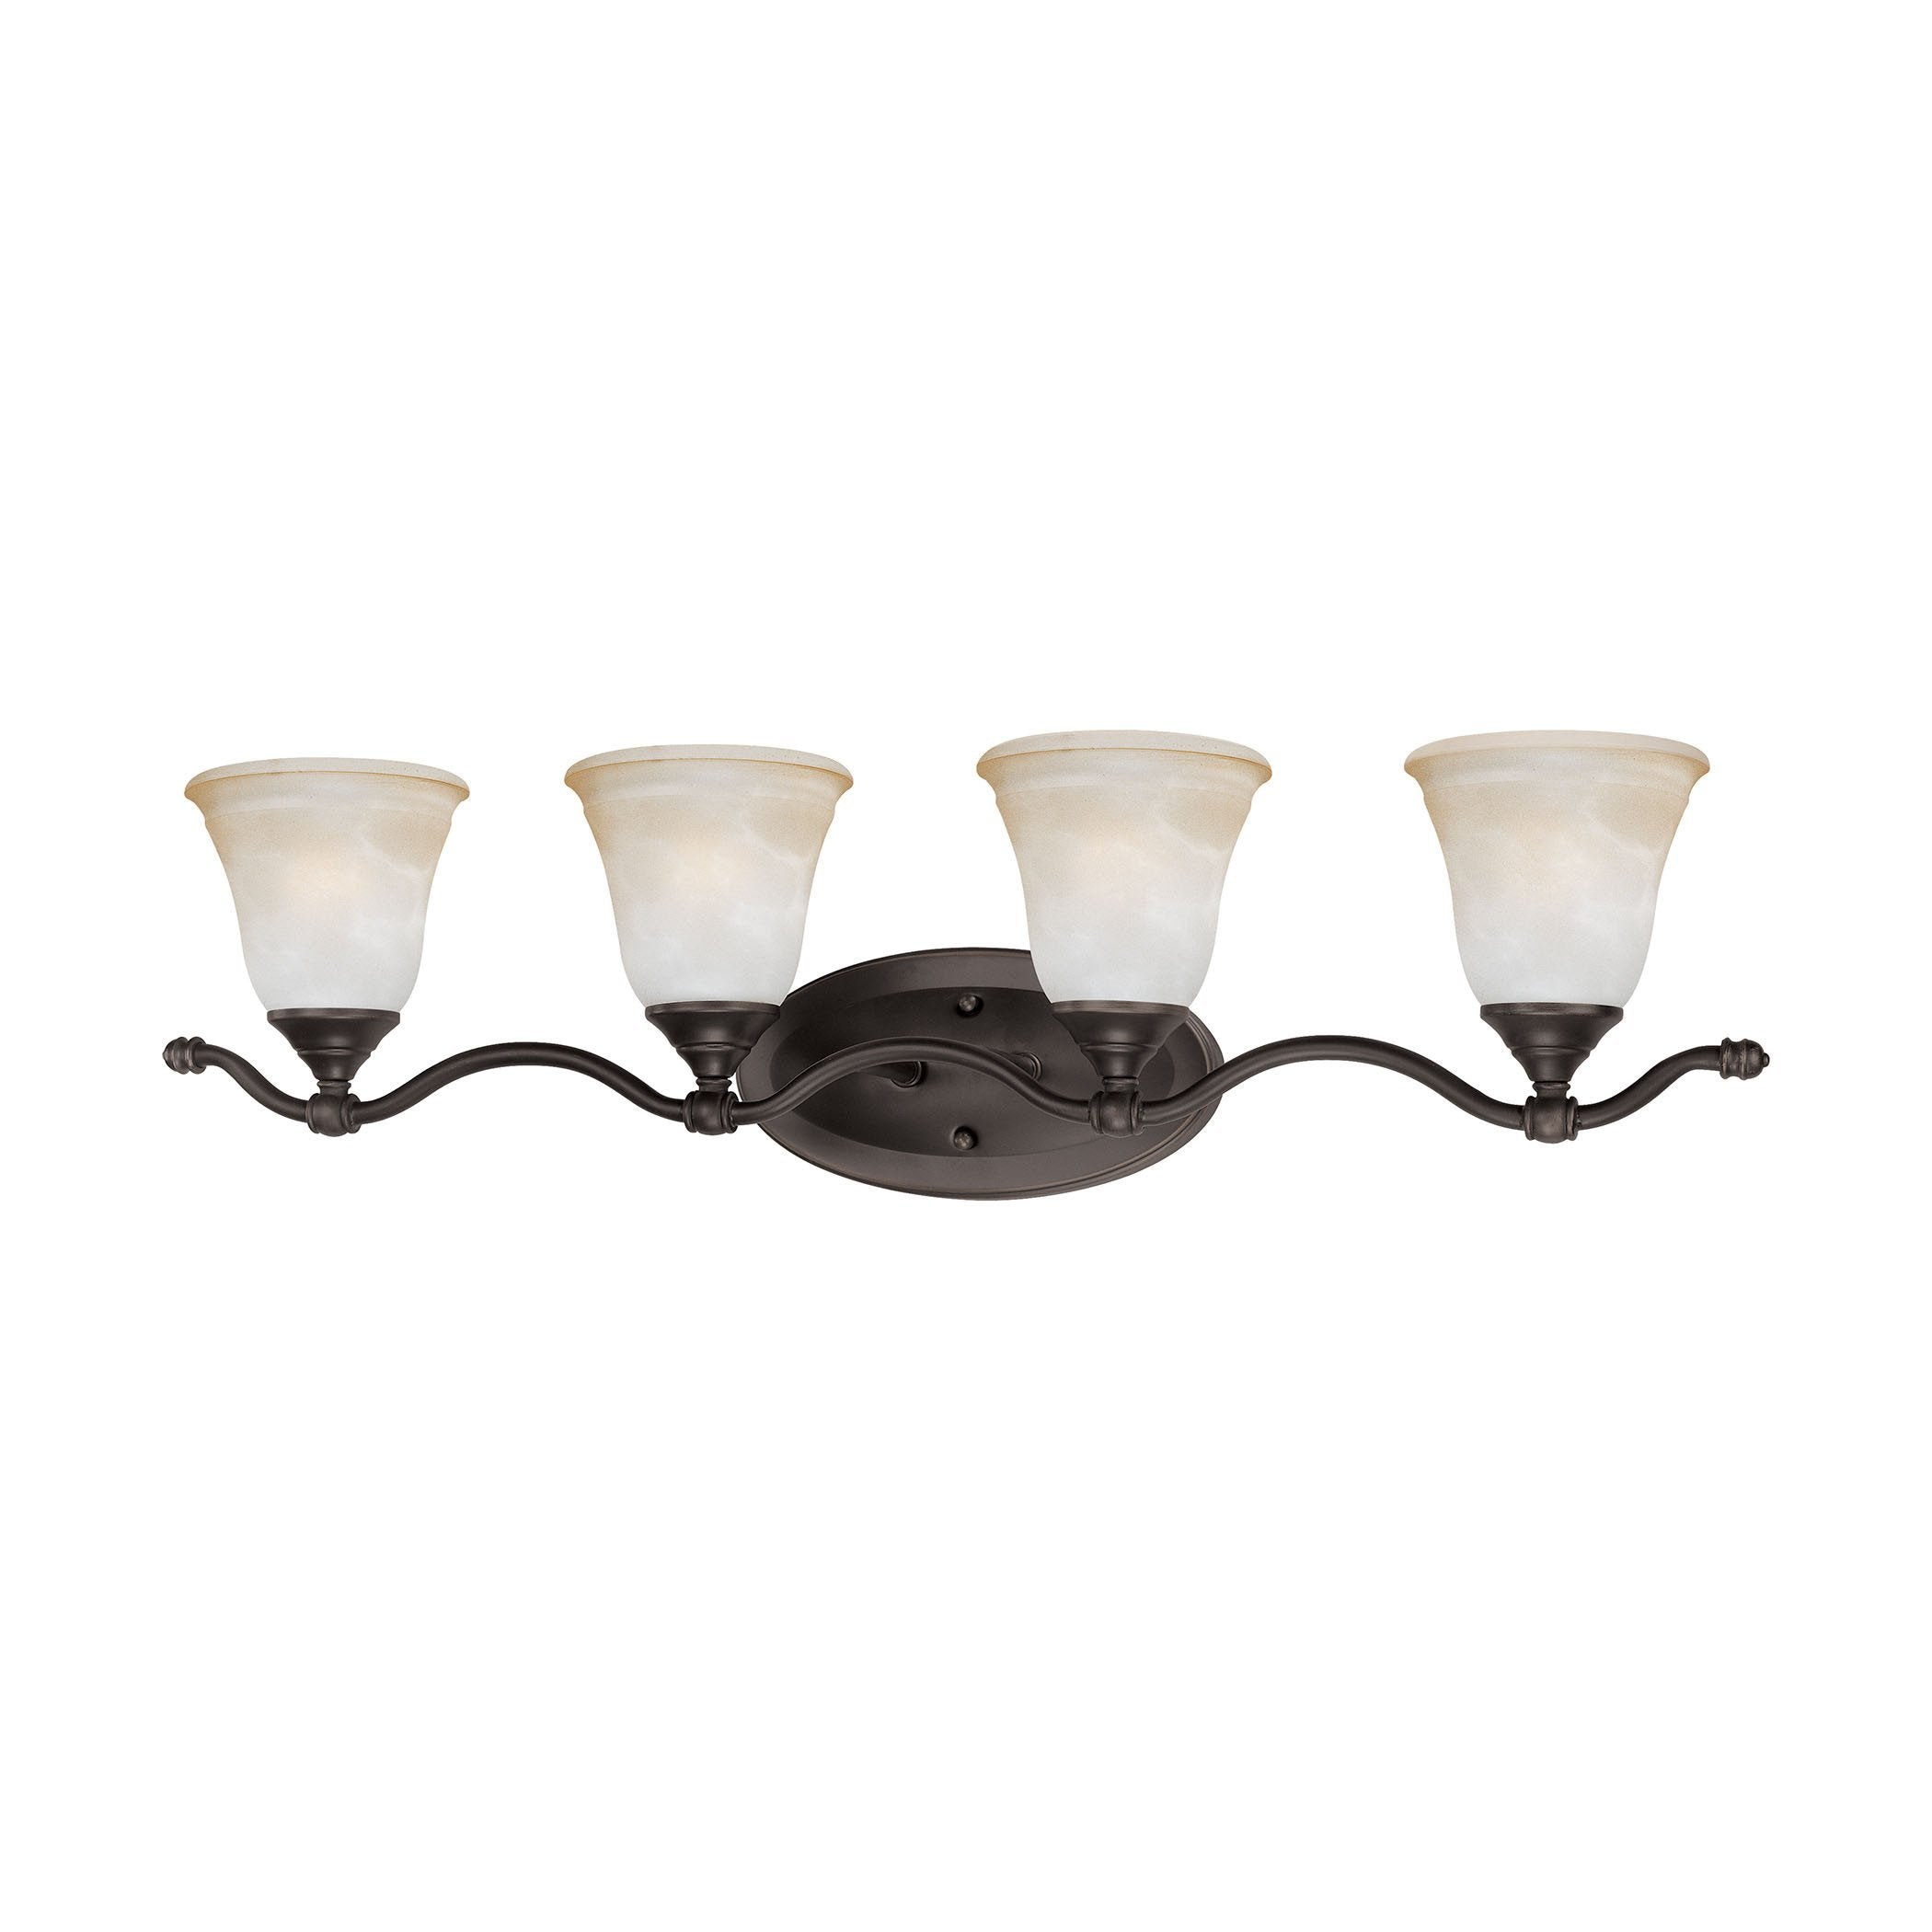 Thomas Lighting SL760462 Harmony Collection Aged Bronze Finish Traditional Wall Sconce